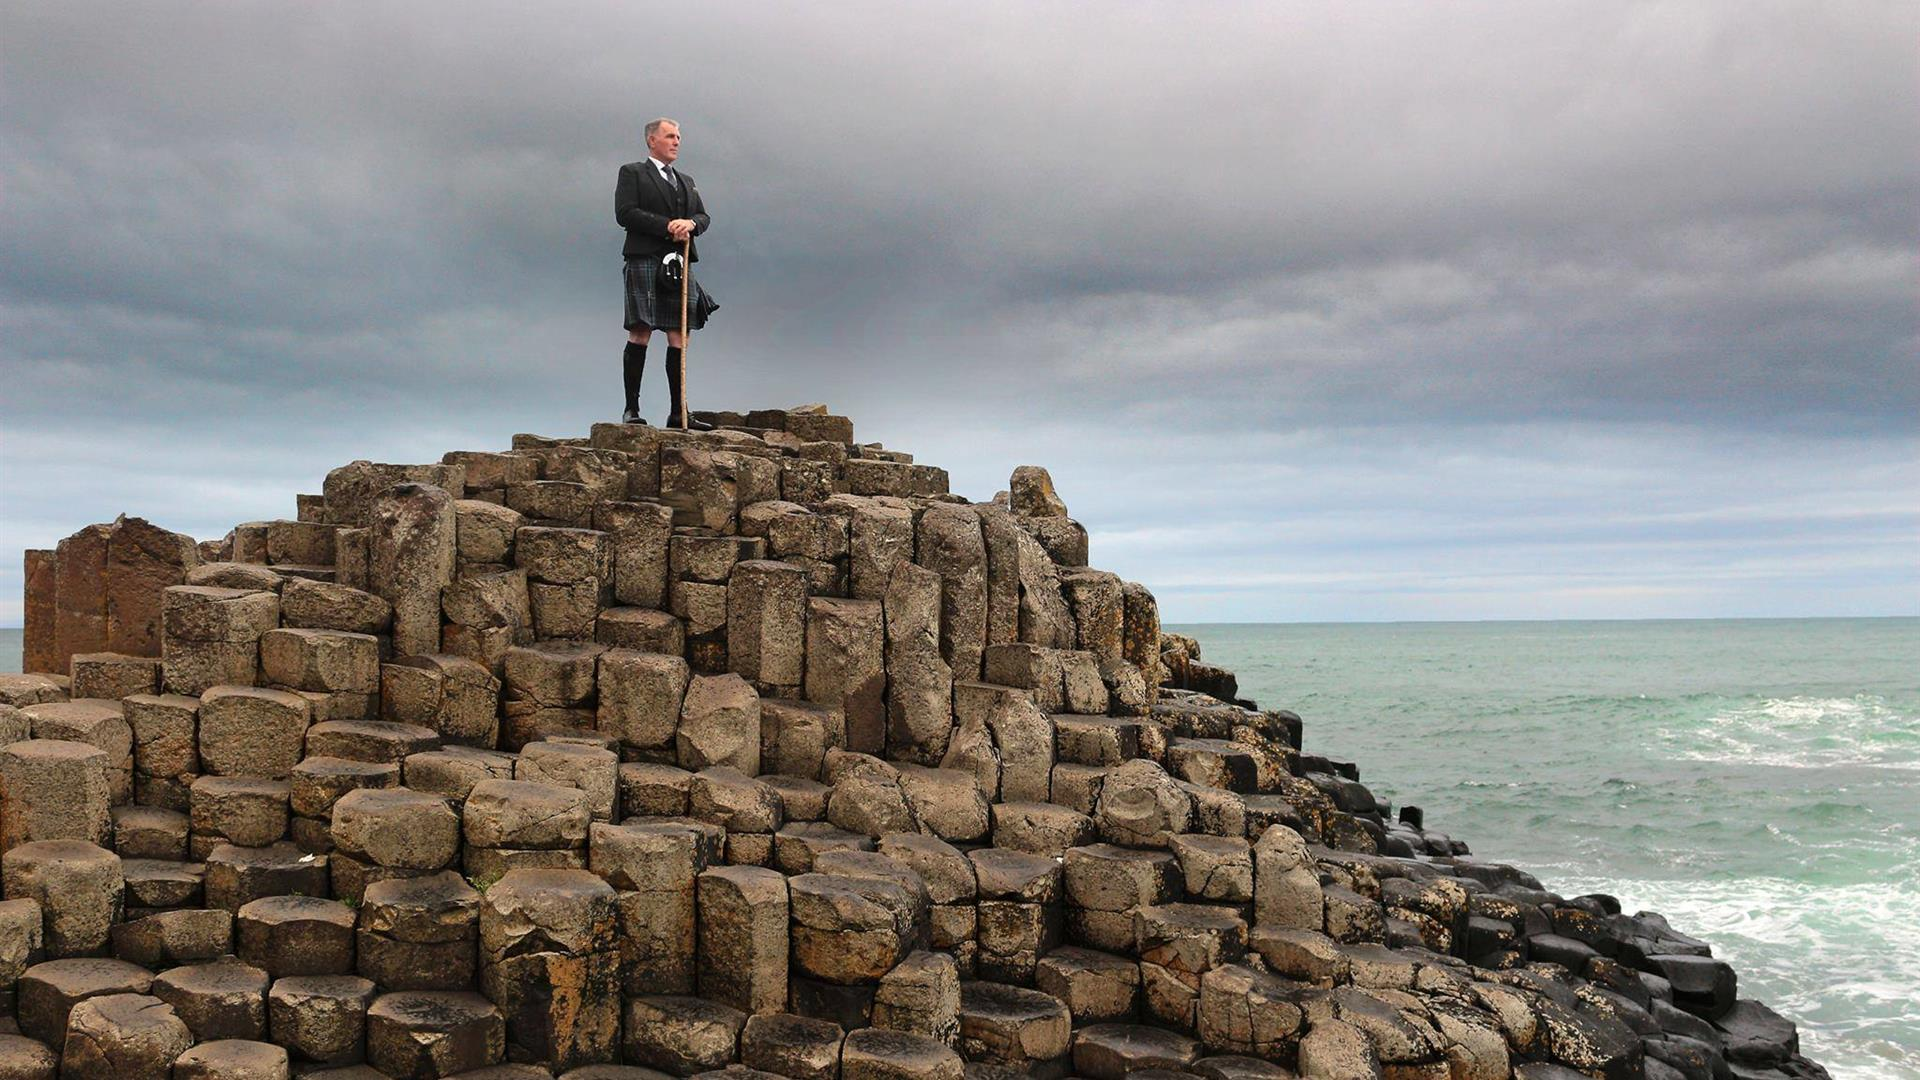 Dander with Dalriada - Guided walking tour of Giant's Causeway